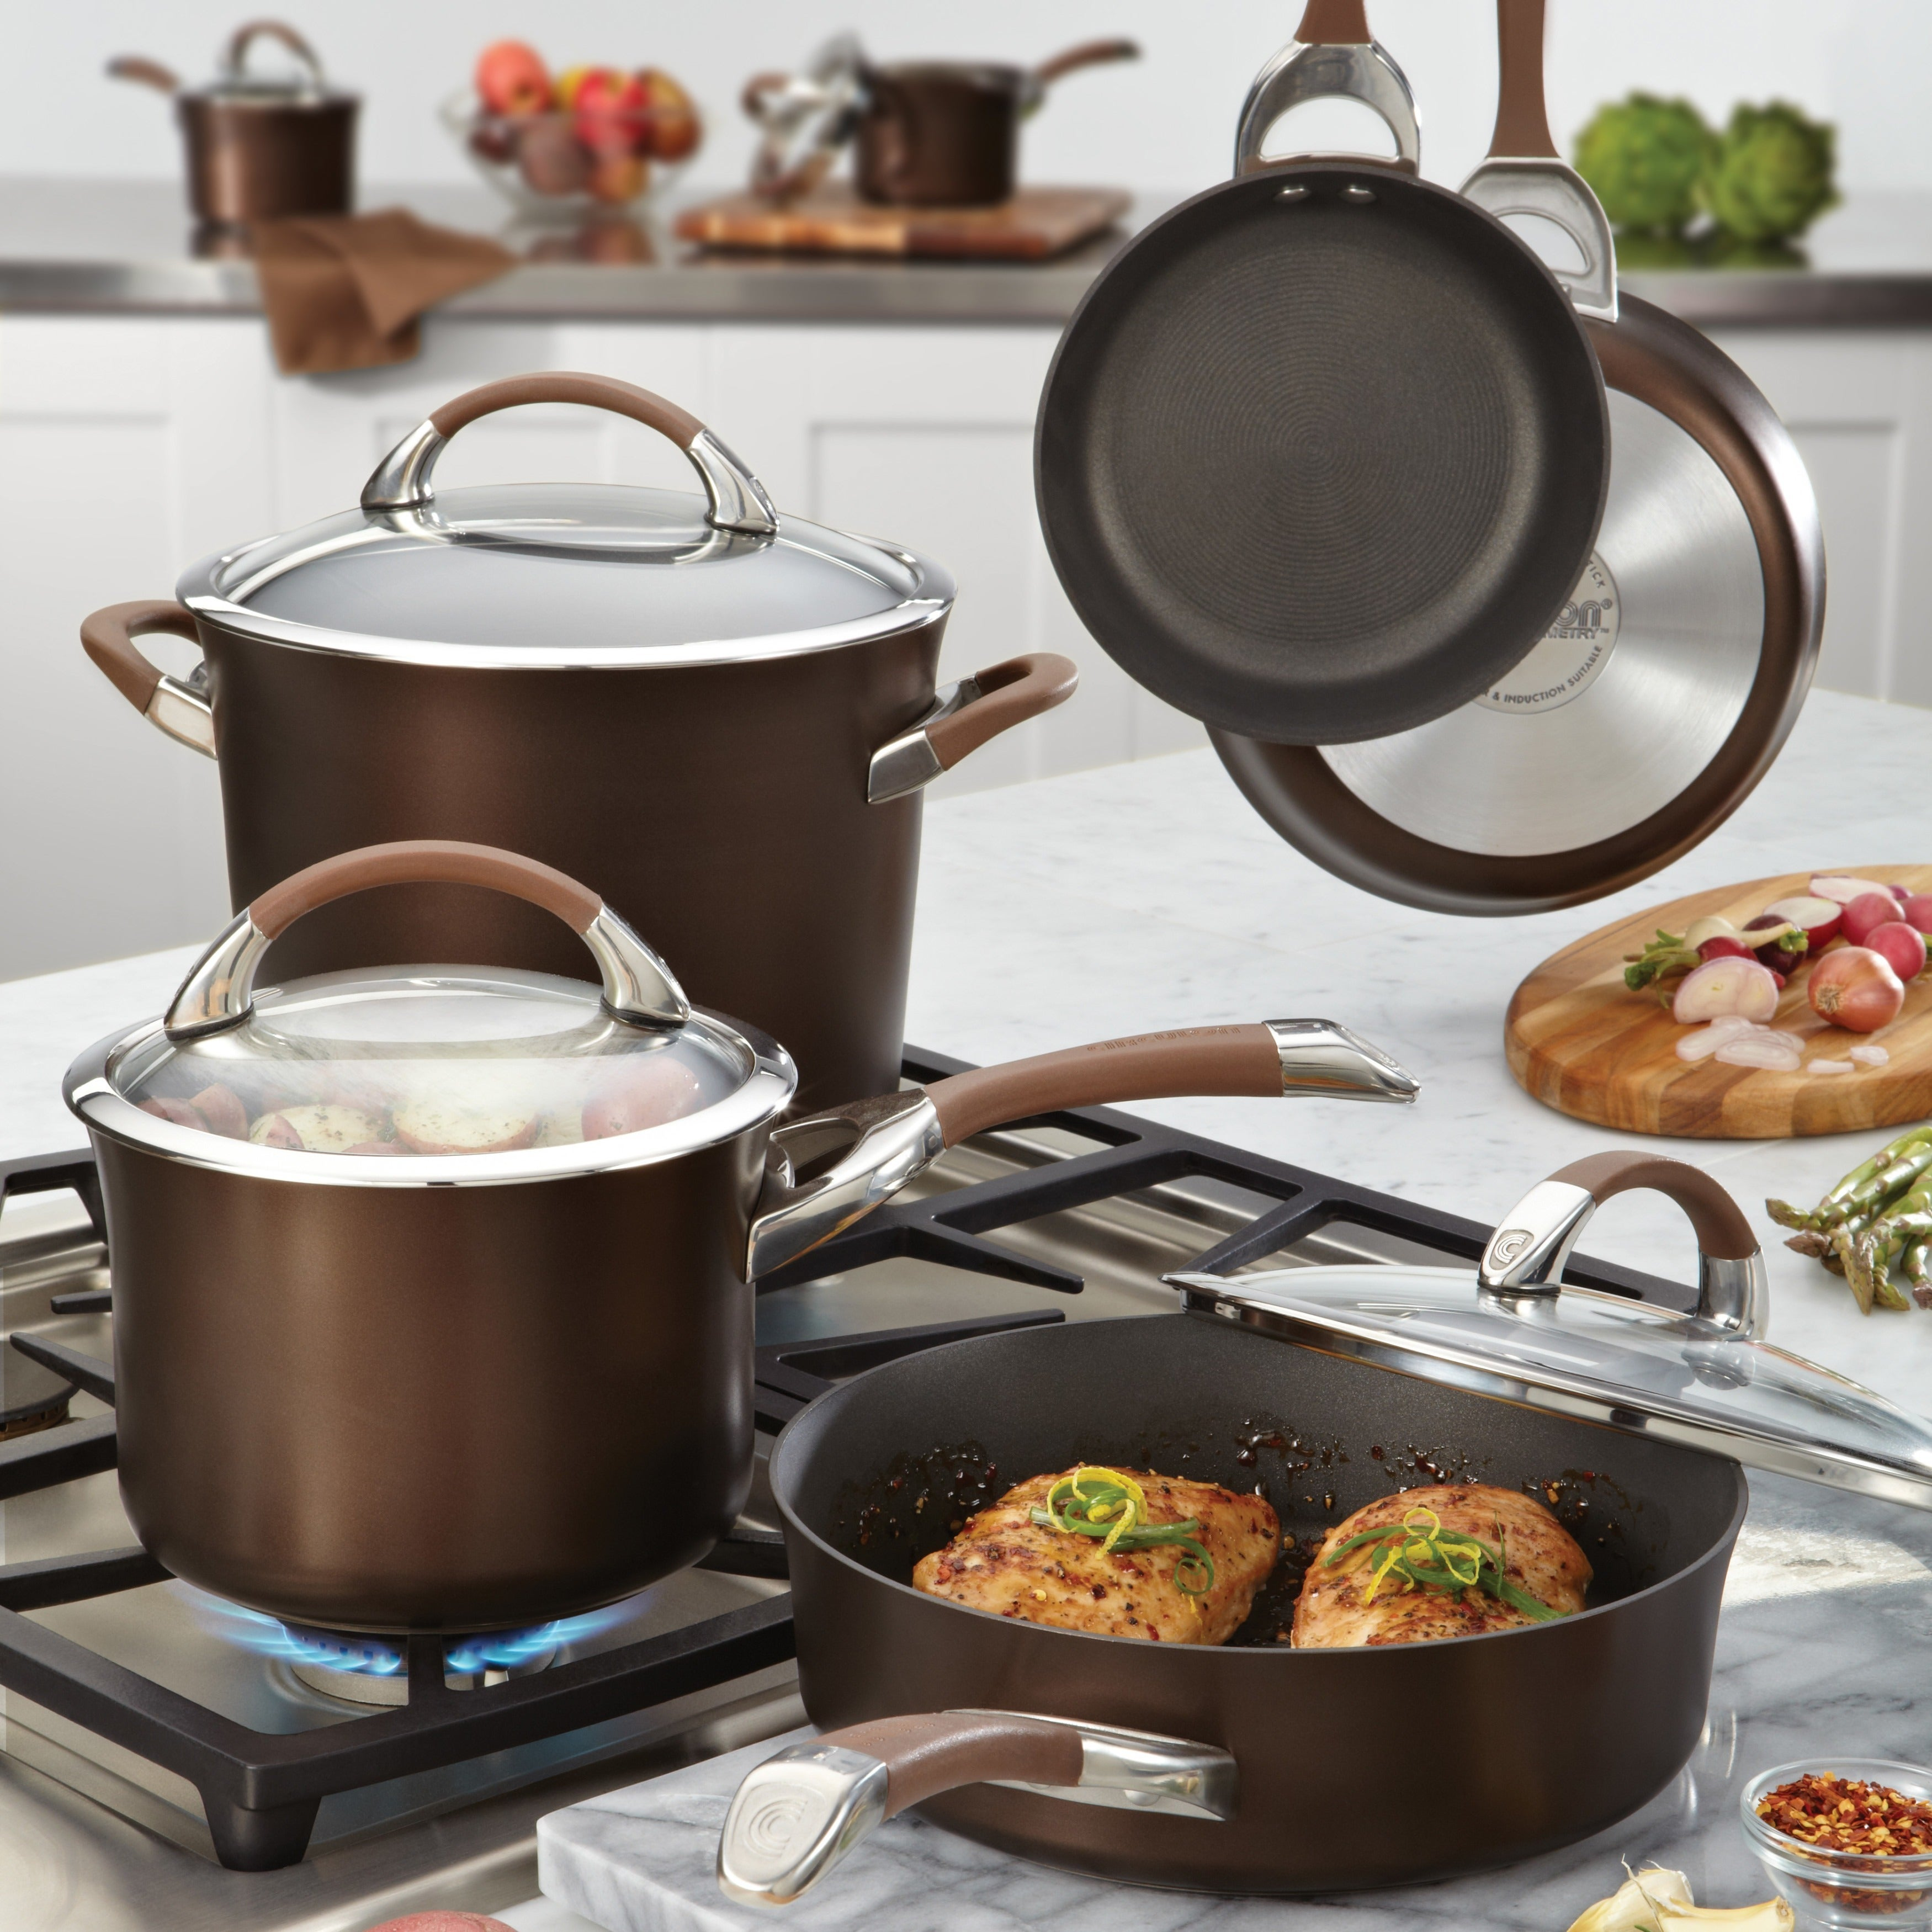 Circulon Symmetry Chocolate Hard Anodized Nonstick 11 Piece Cookware Set Free Shipping Today 6243251